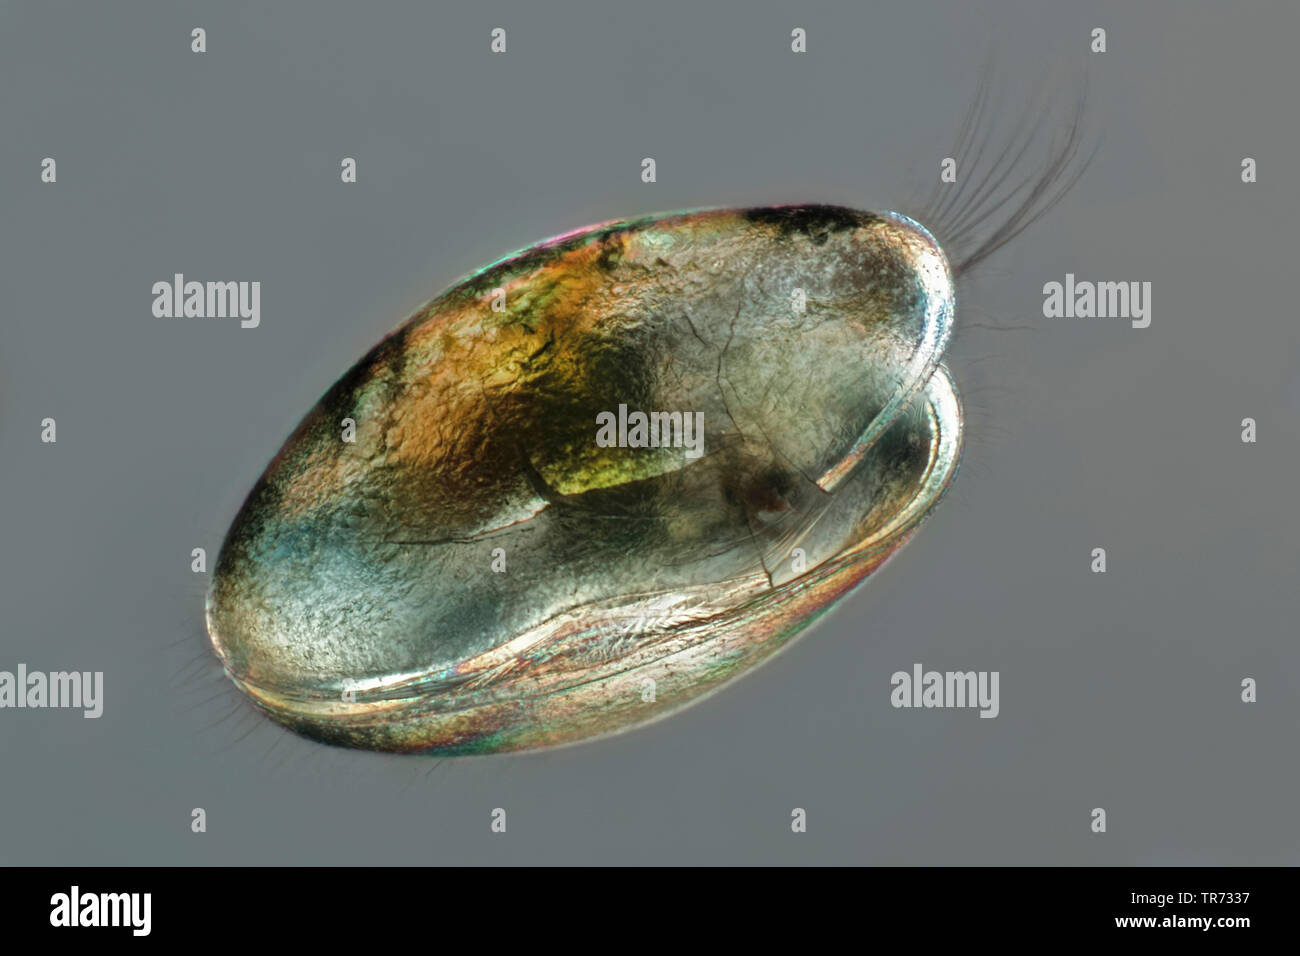 ostracods (shell-covered crustaceans), seed shrimps (Ostracoda), light microscopy, Germany - Stock Image